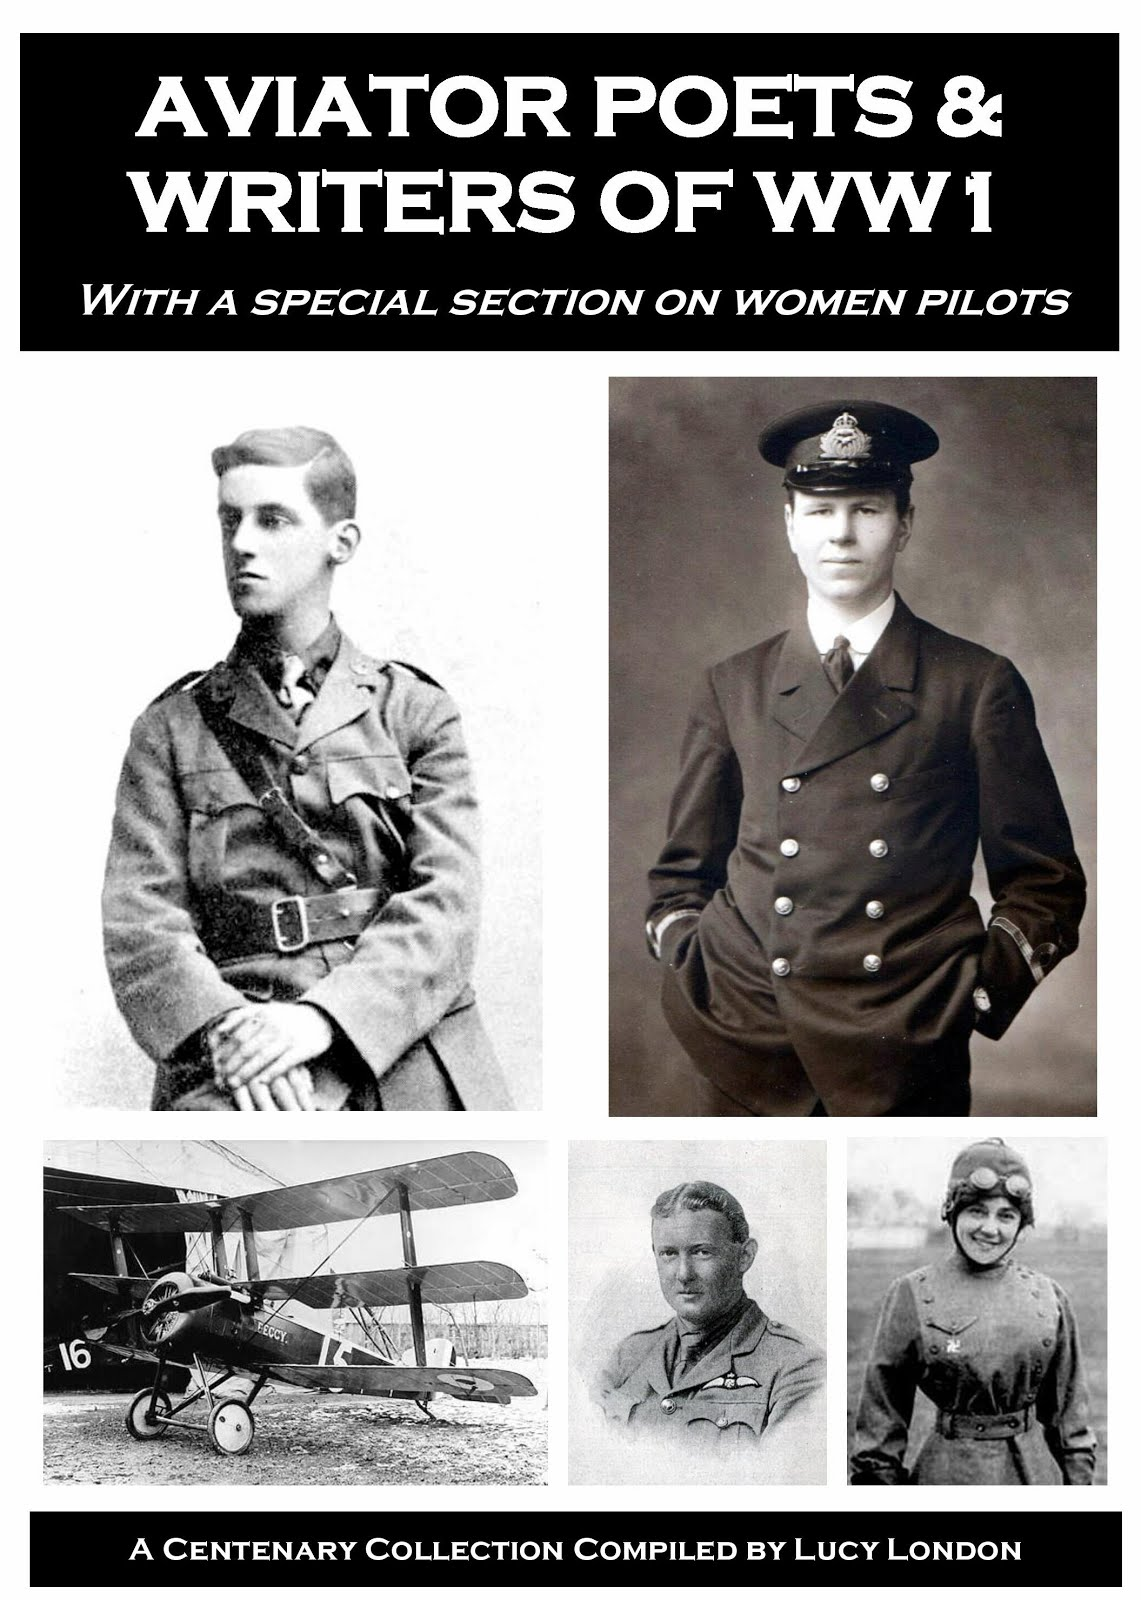 Aviator Poets & Writers of WW1 - Book Now Available